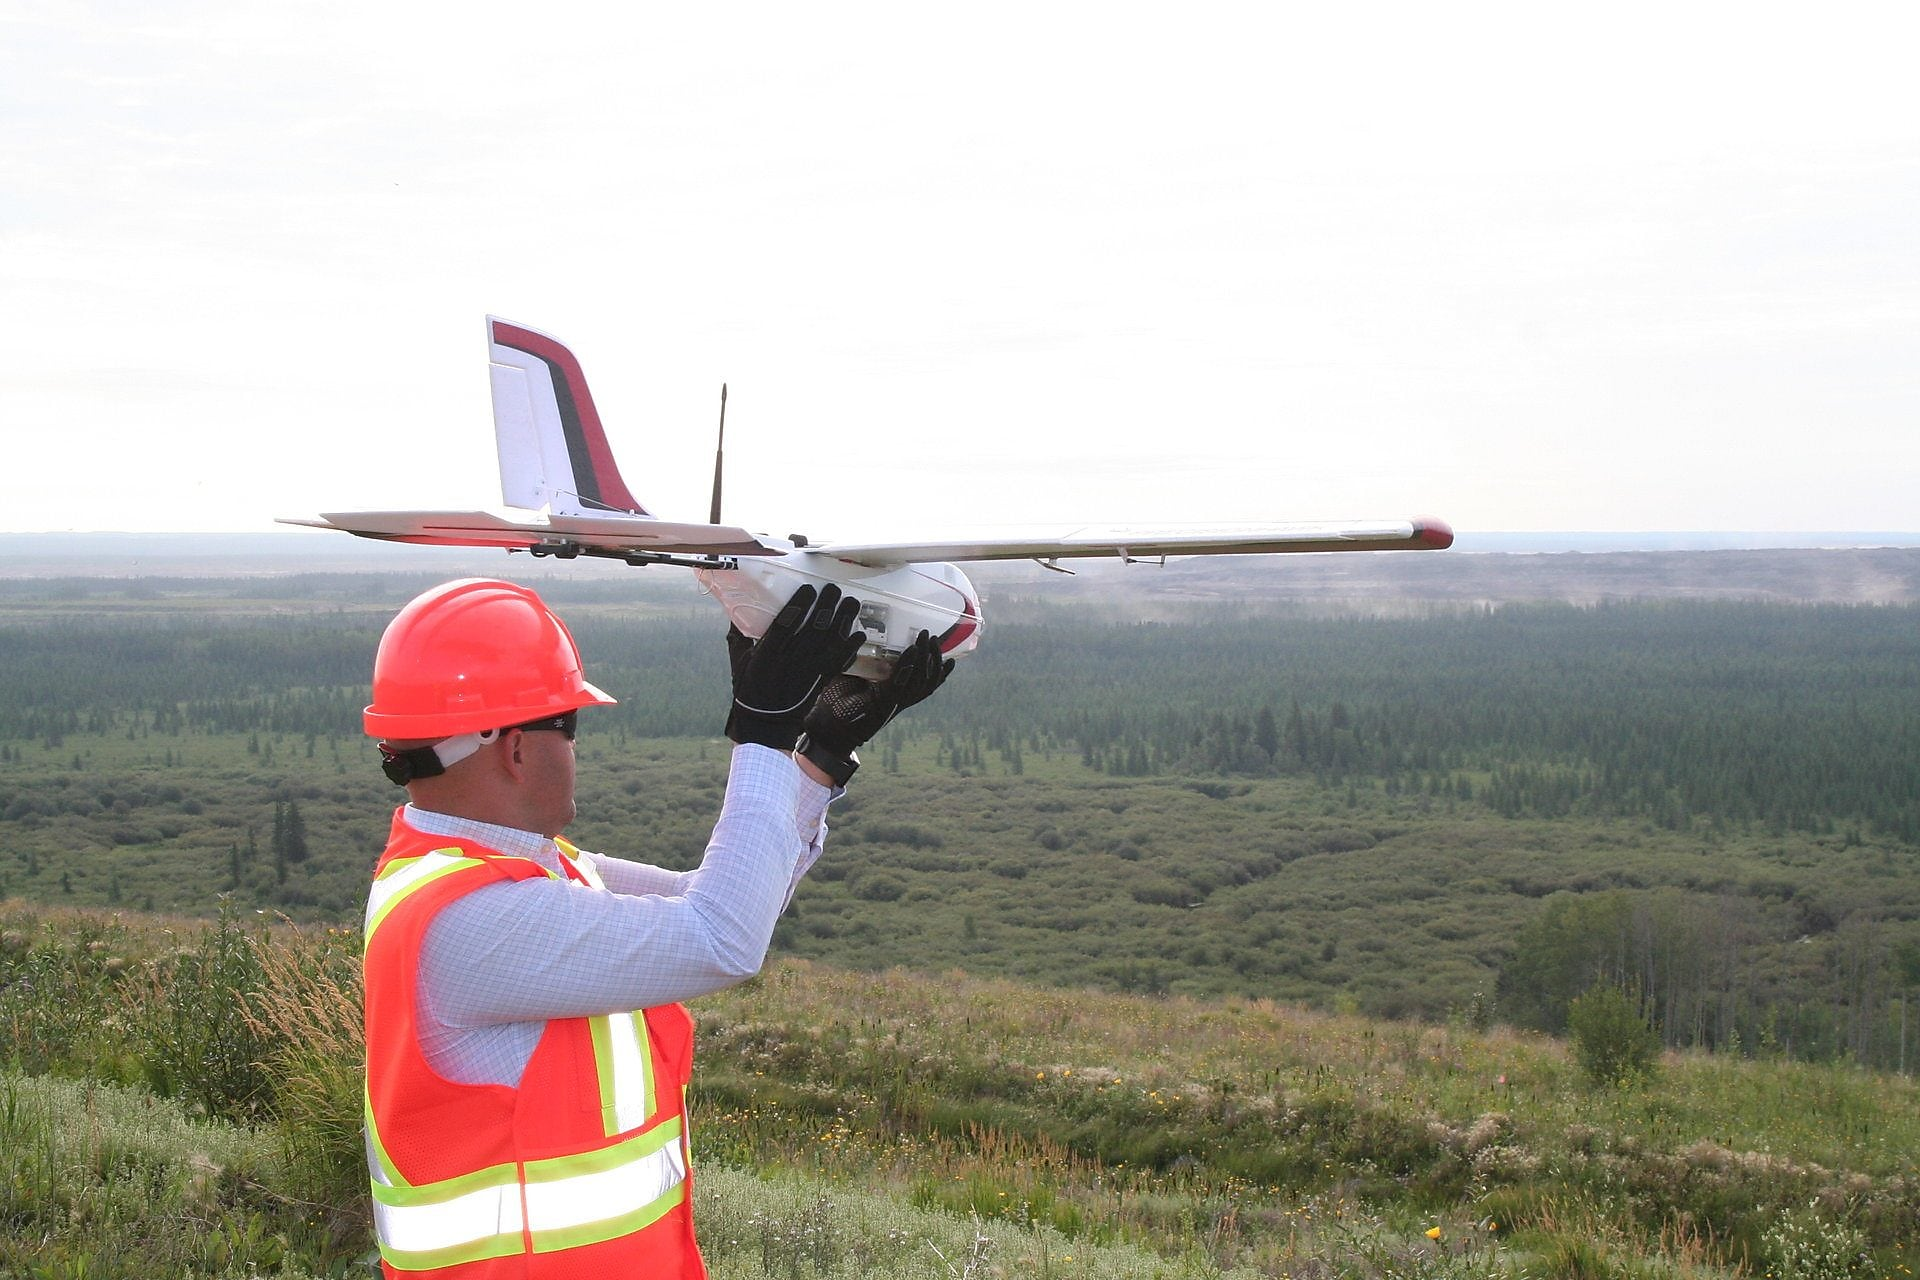 A member of the UAV team prepares to use the new UAV aircraft technology.